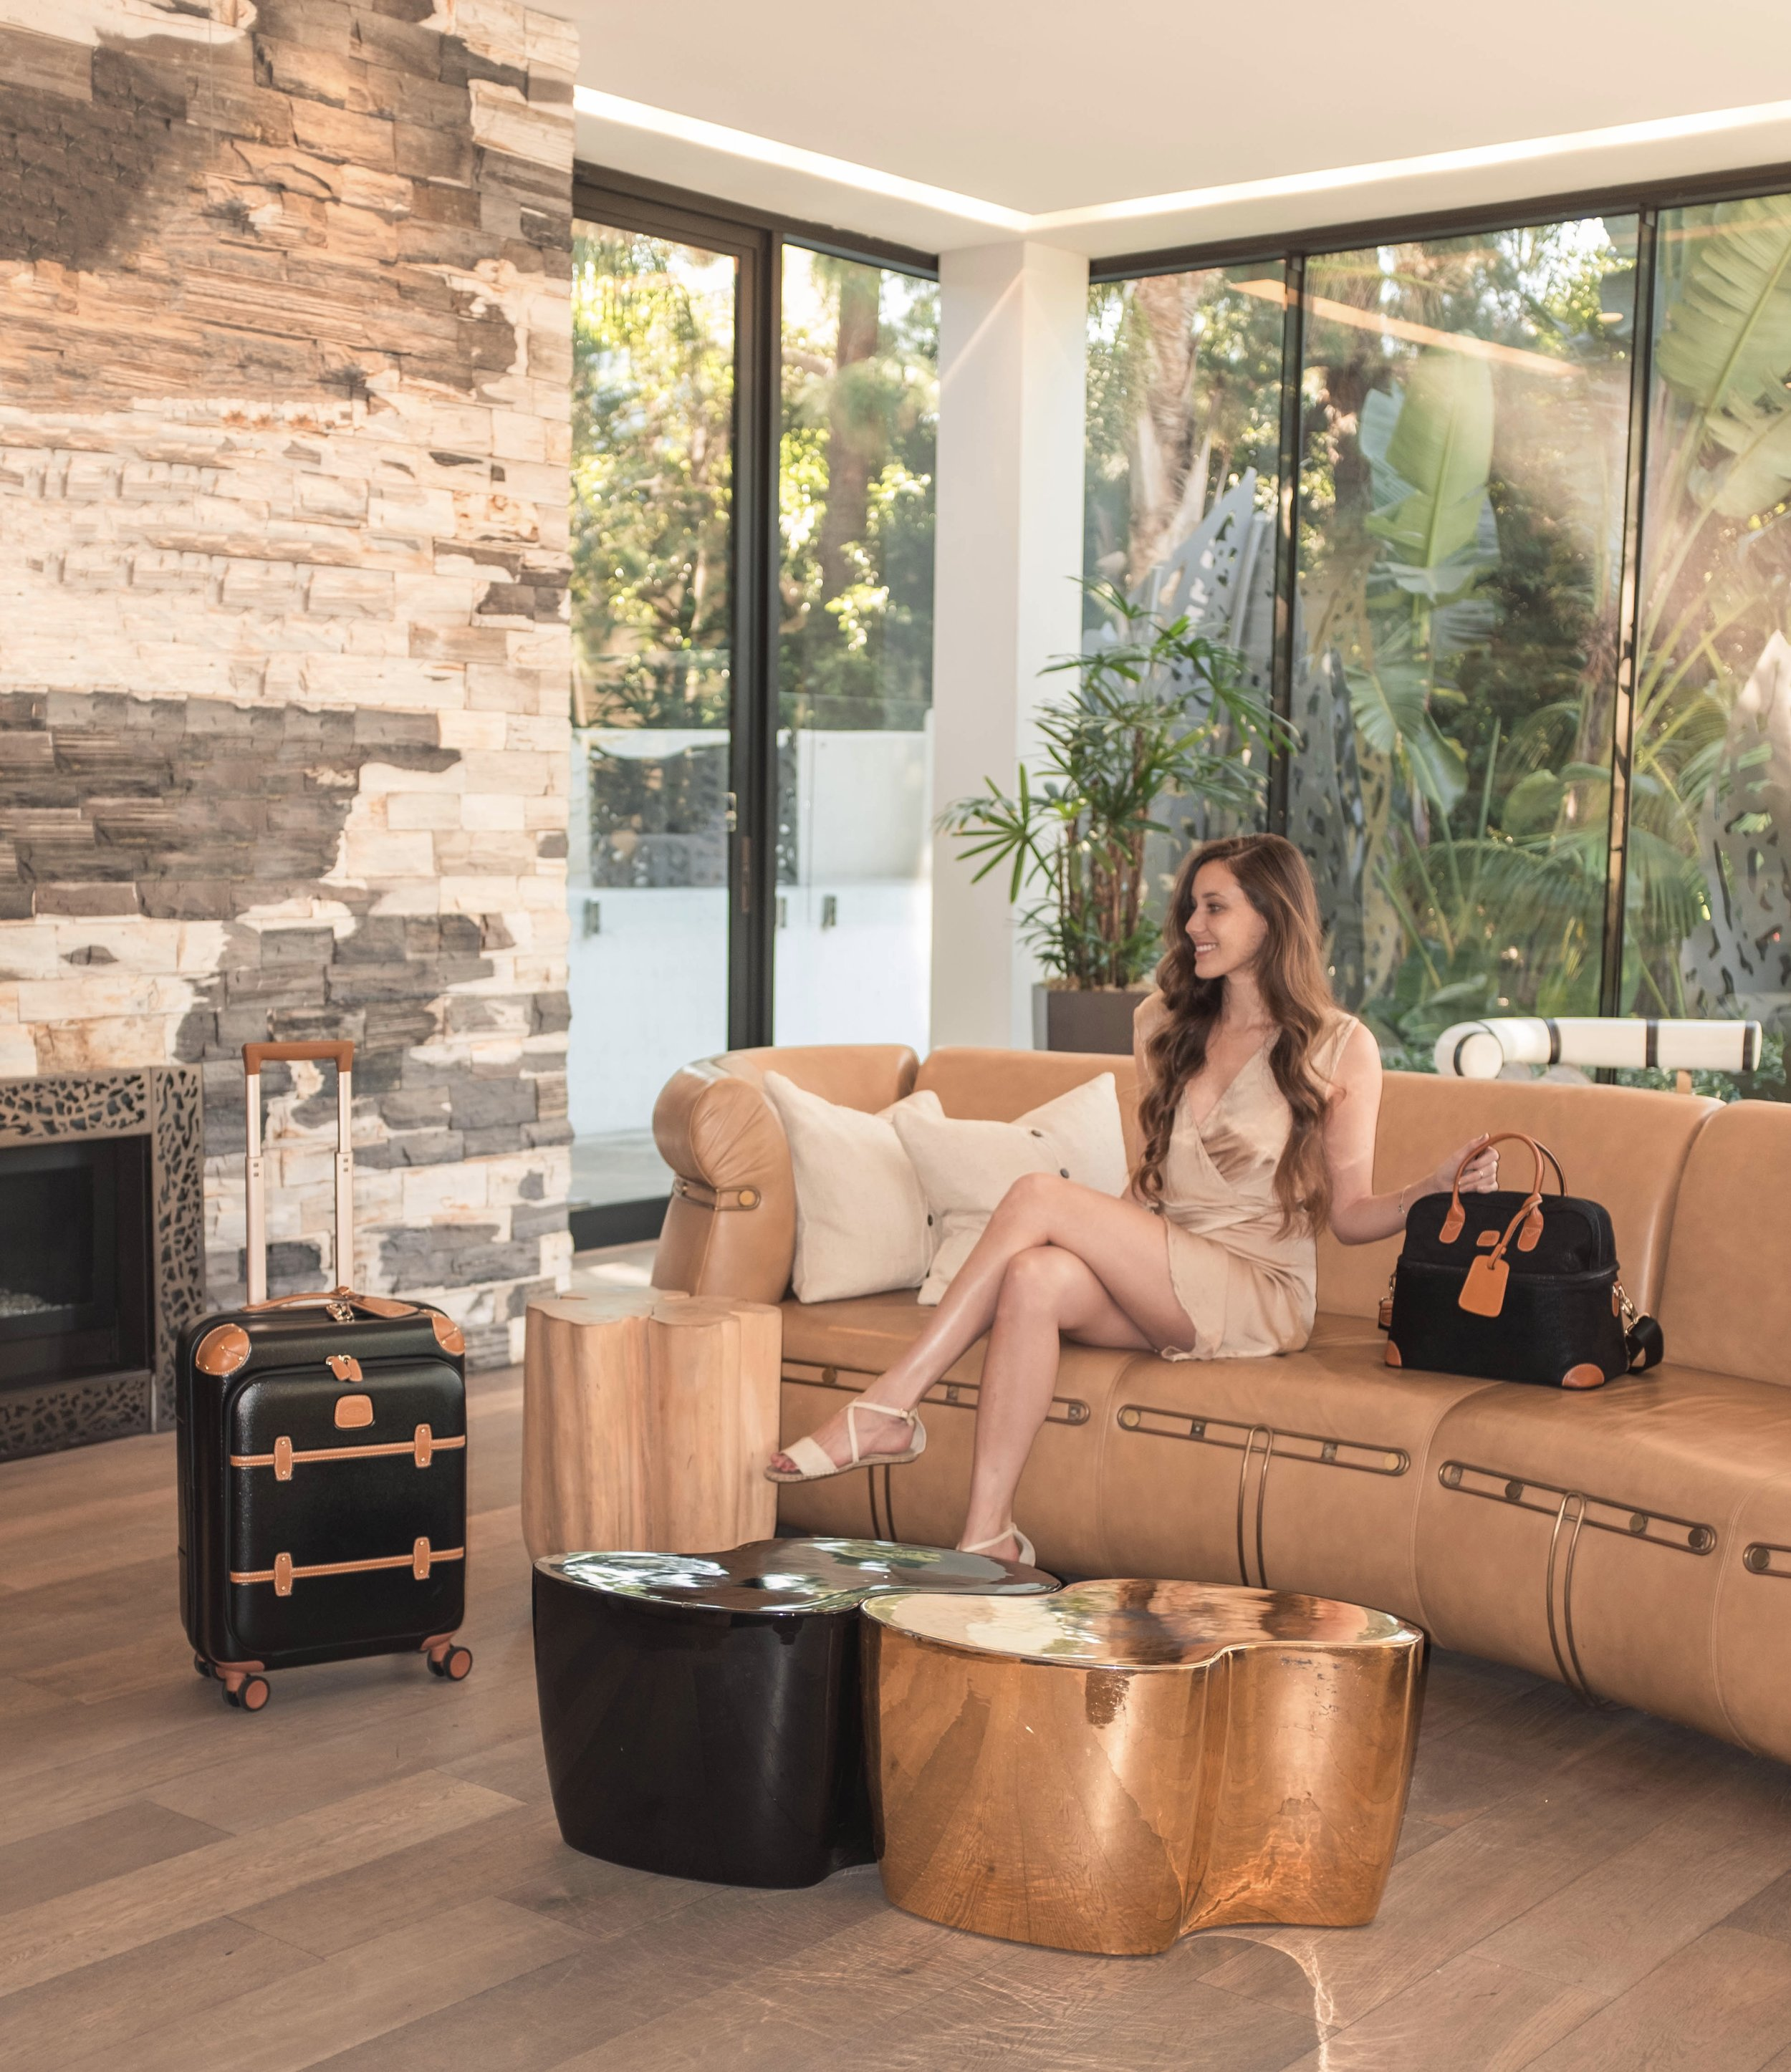 """Carina Otero shown with the BRIC's MILANO Bellagio business v2.0 21"""" carry-on spinner (Left) and life tuscan train case (right). Giveaway contestants can enter to win the bellagio business v2.0 21"""" carry-on spinner"""